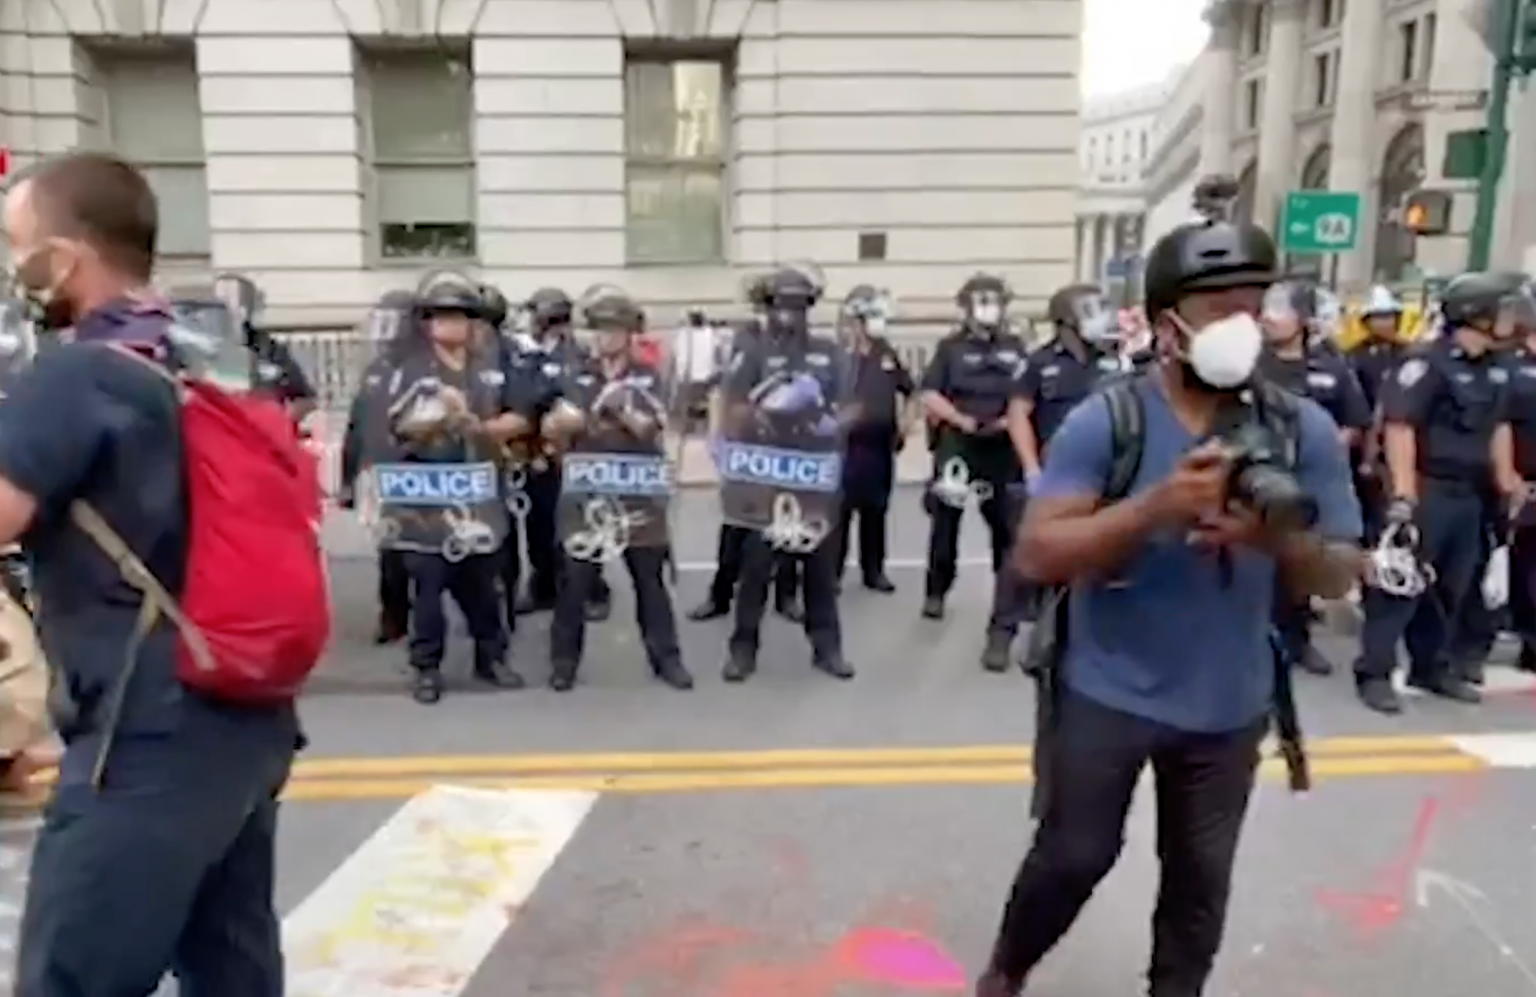 Report: NYPD cops retreat from protesters after early morning clash at City Hall